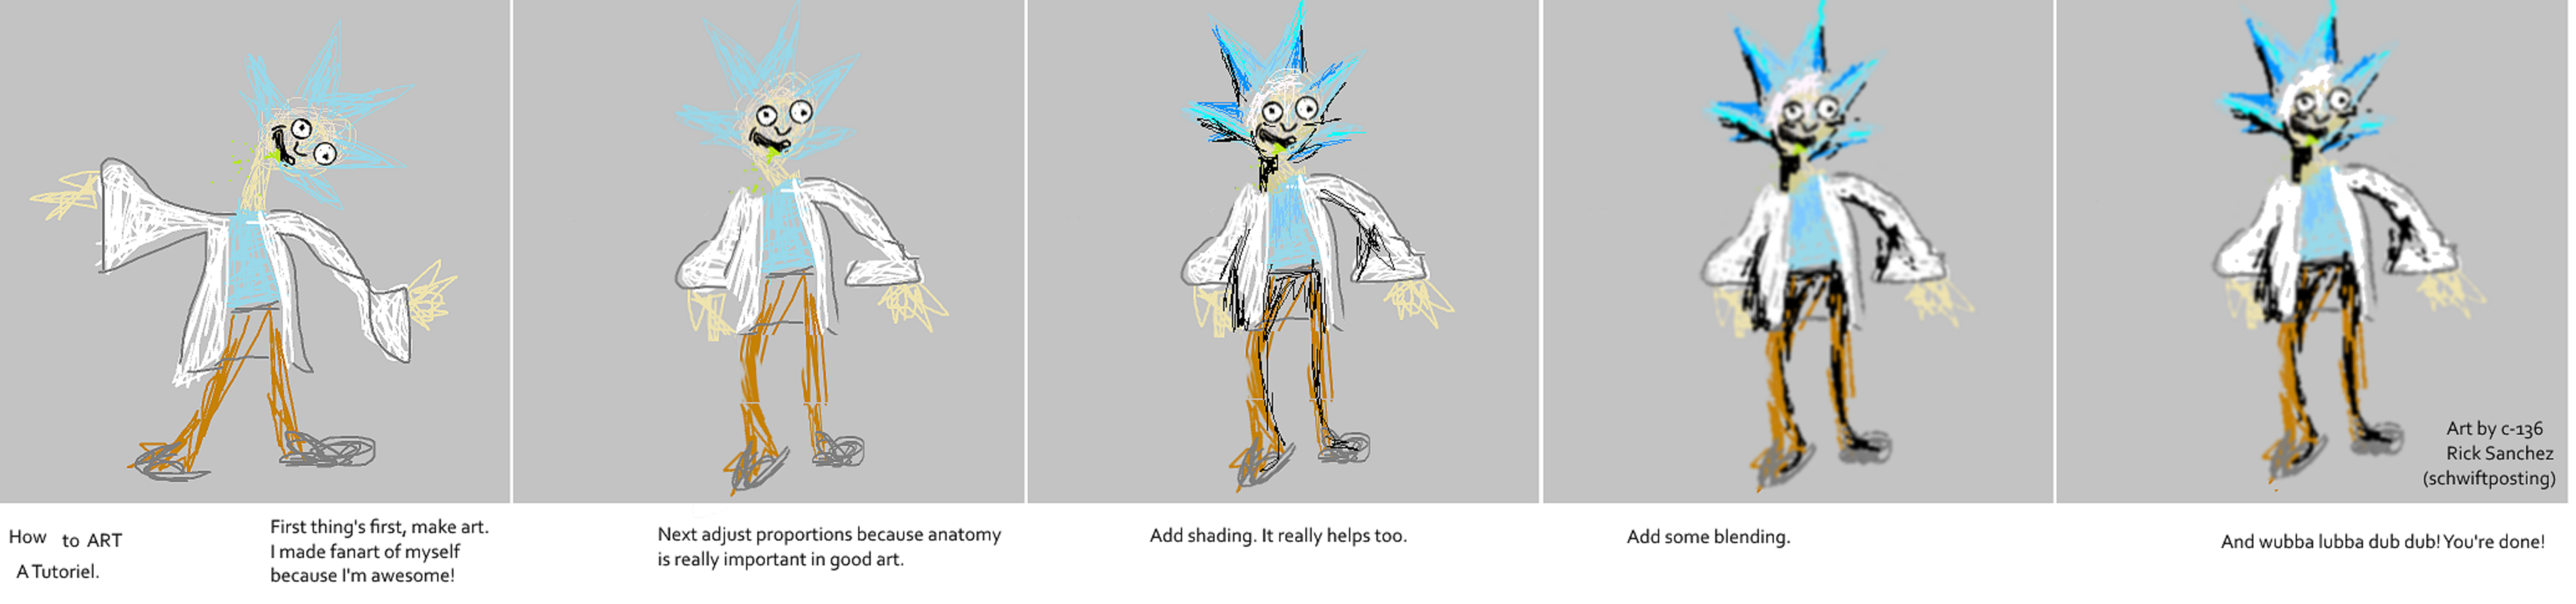 how to improve your art a tutorial by schwiftposting on deviantart